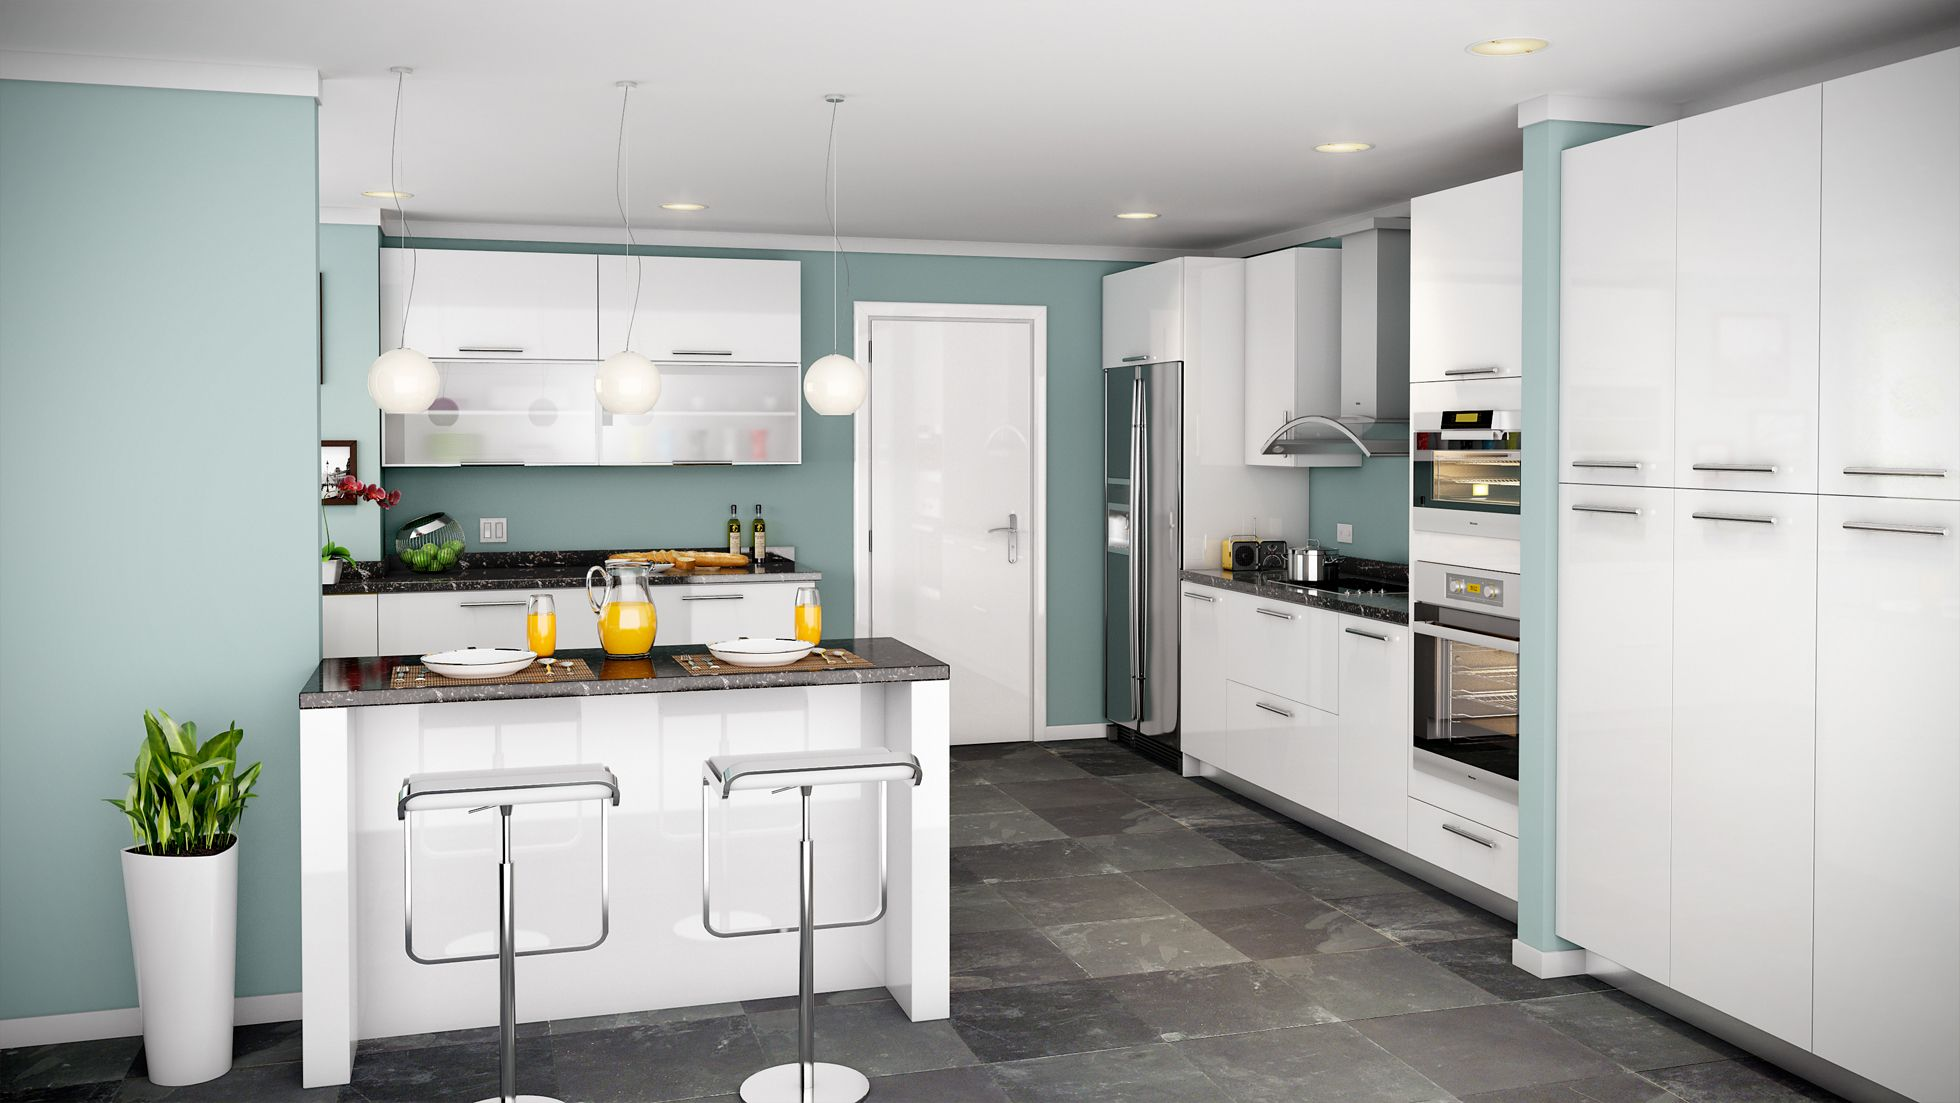 Artika European Refined Excellence At It S Best Offering A High Gloss Acrylic Flat Pa Kitchen Cabinets Cost Of Kitchen Countertops Kitchen Remodel Countertops